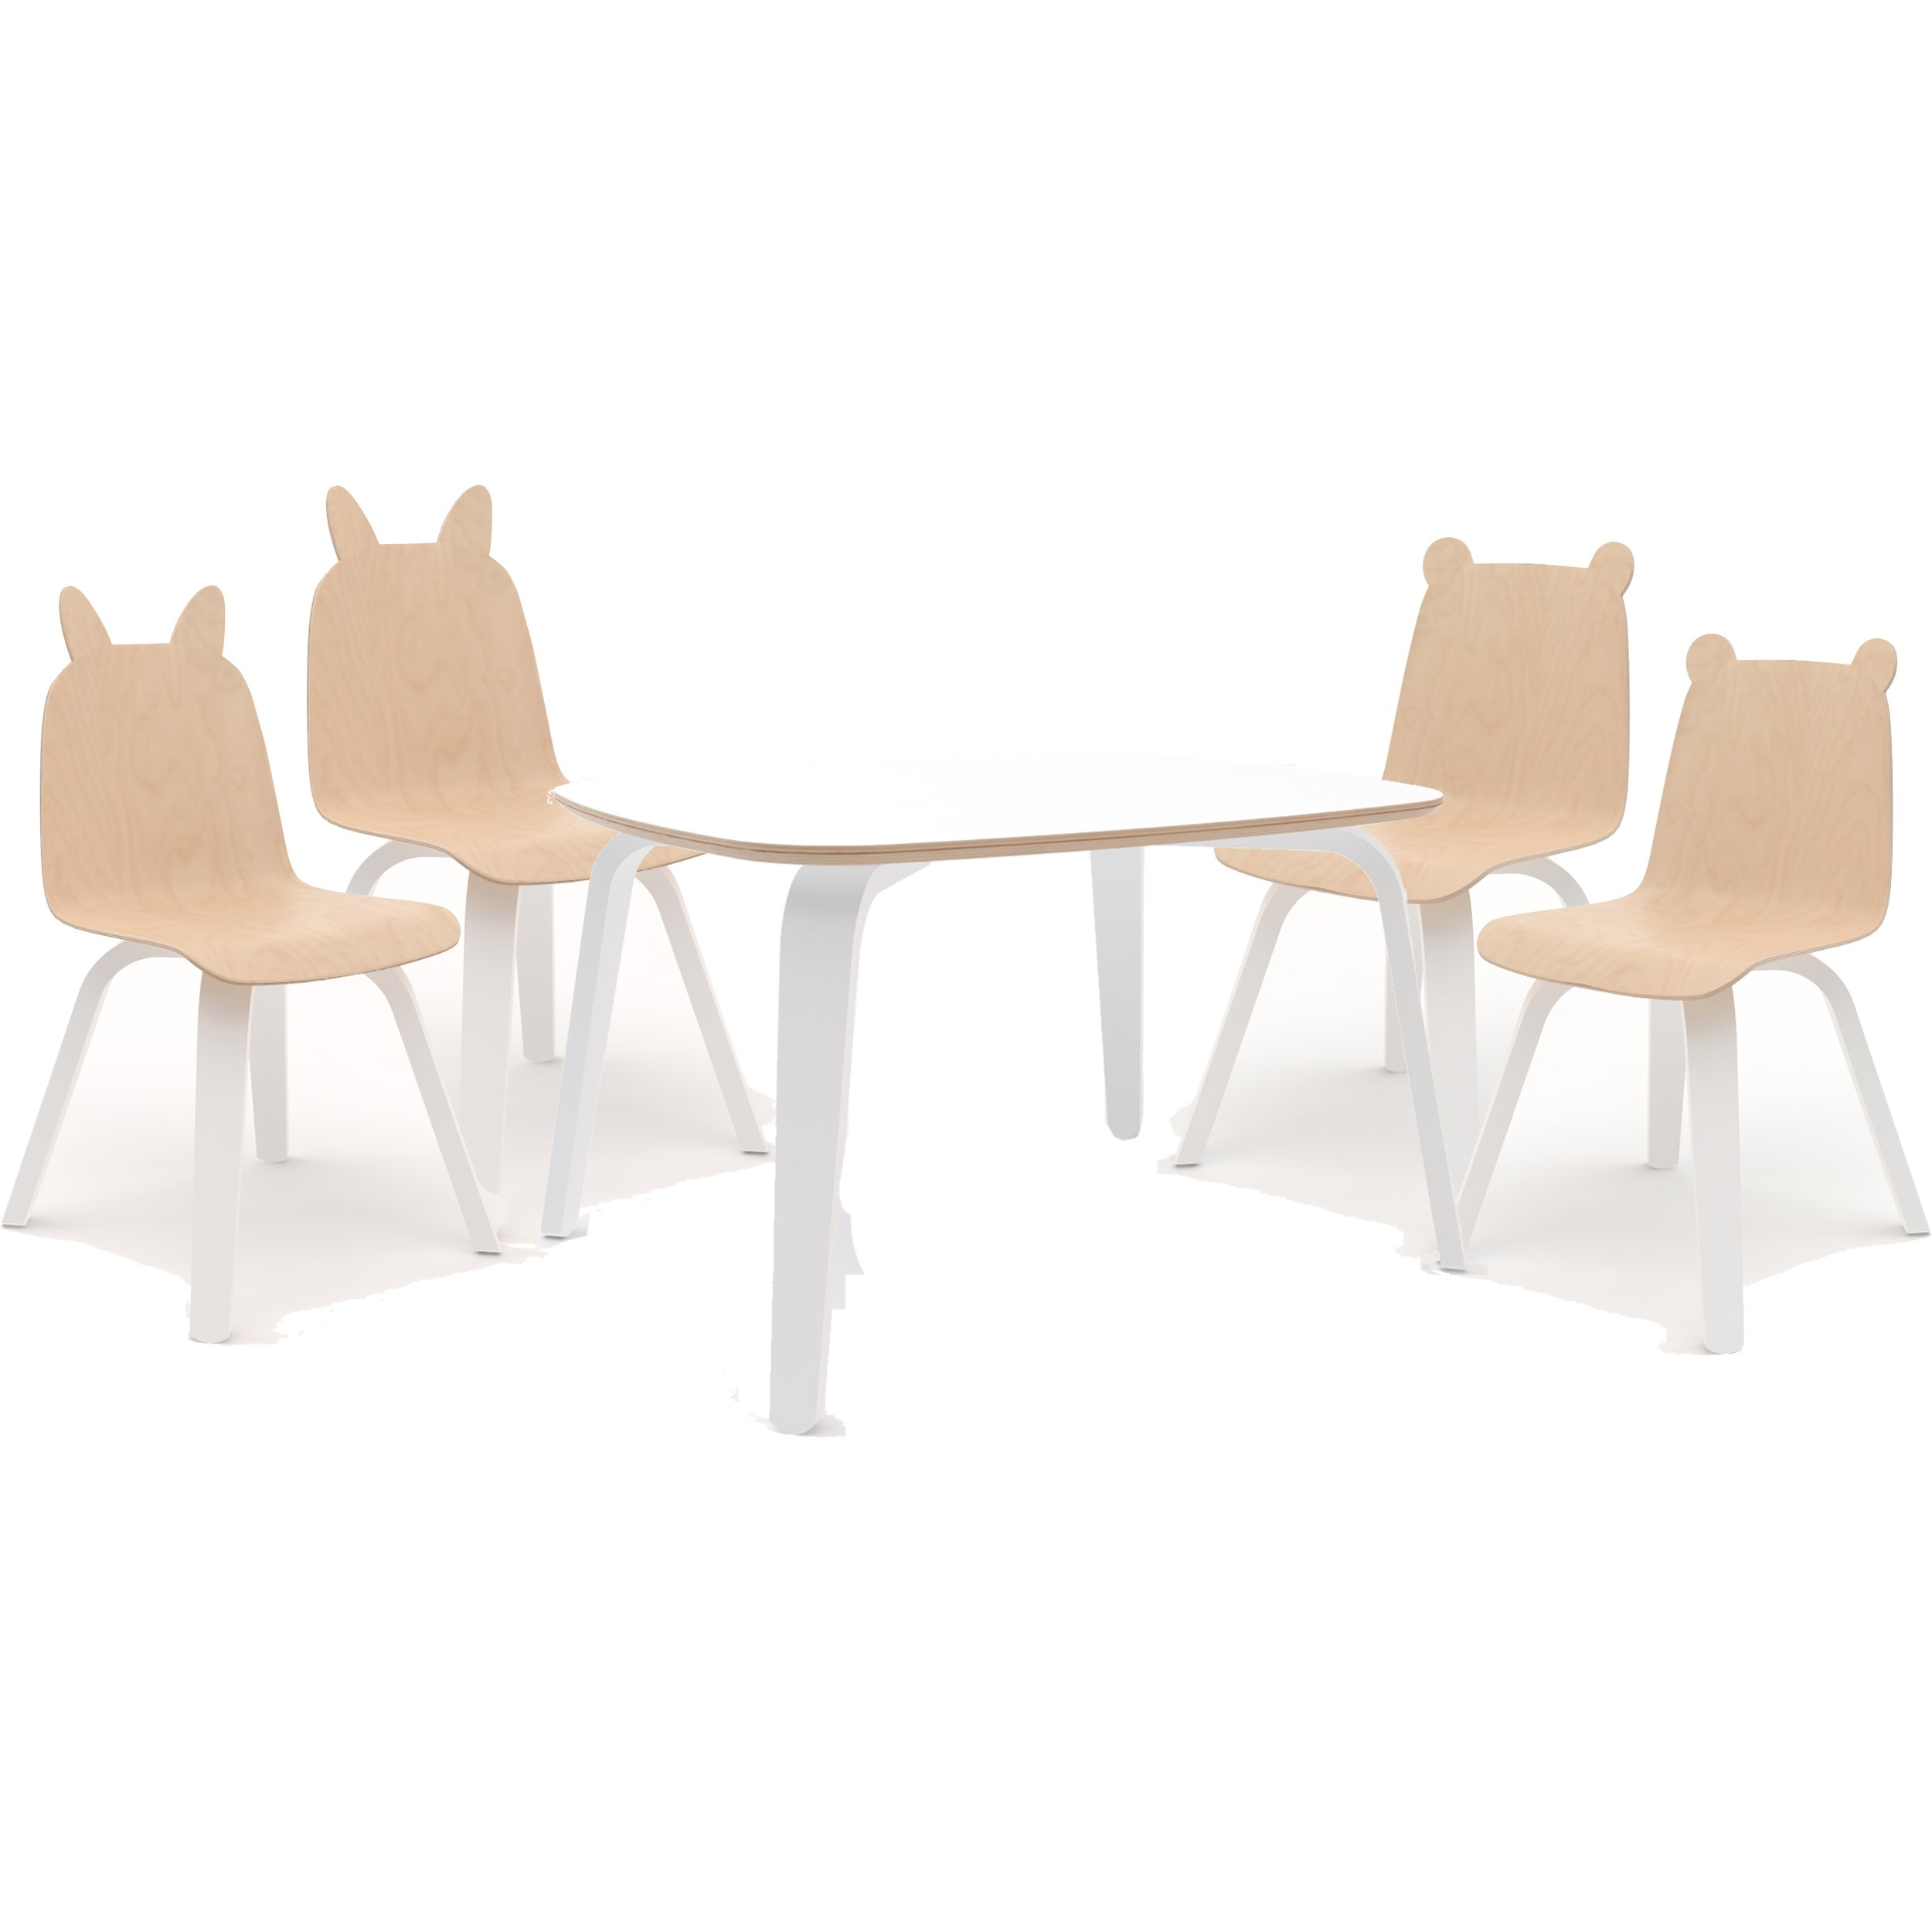 Oeuf Play Table, White and Rabbit & Bear Chairs, Birch (Set of Four)